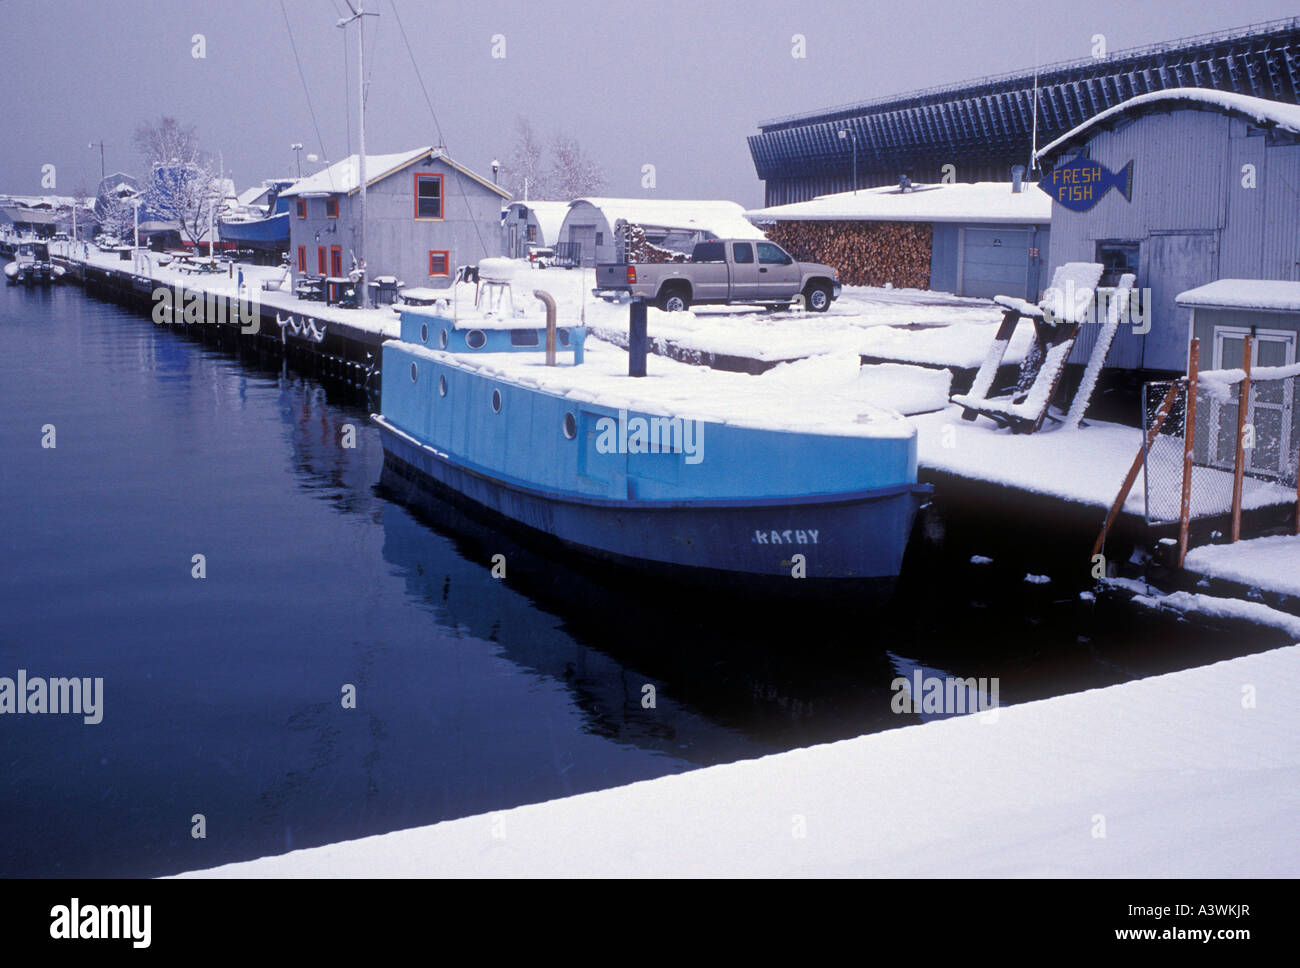 The fishing boat Kathy is covered with snow as she s docked at the Thill s Fish Dock in Marquette Mich - Stock Image